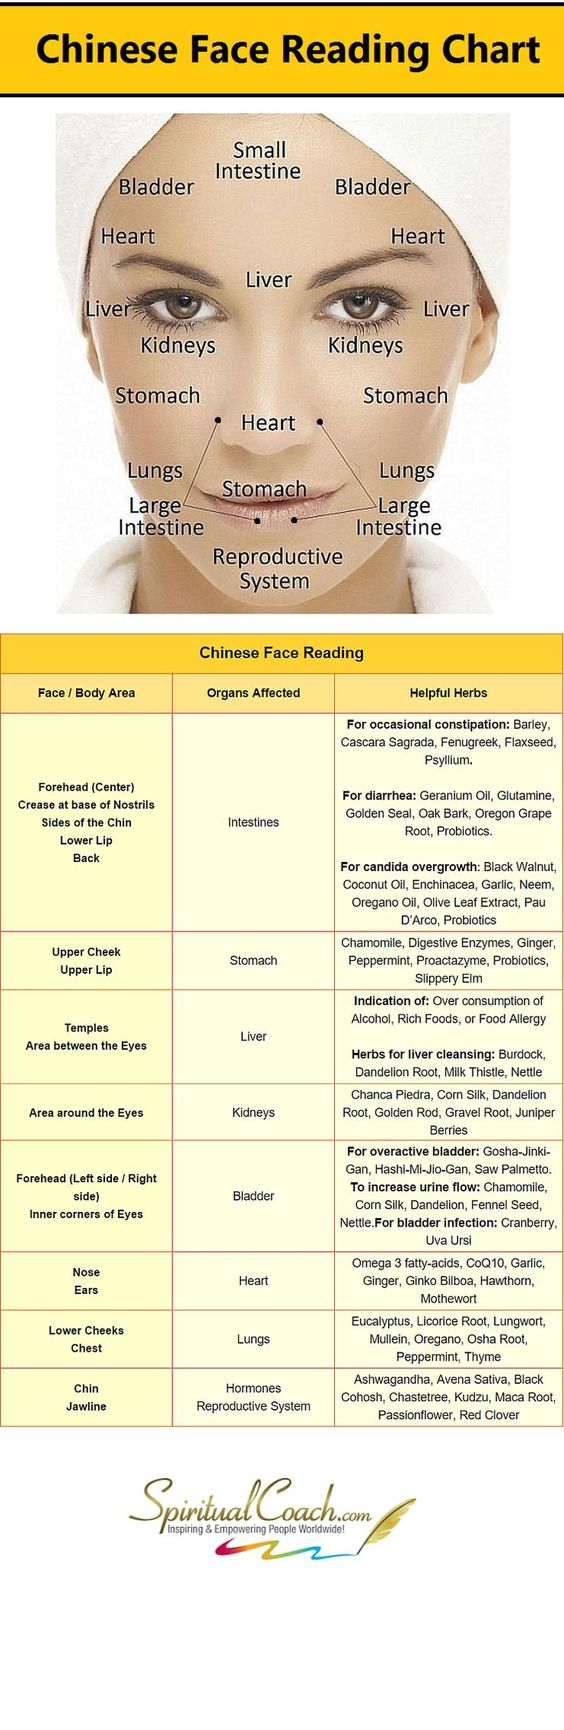 Chinese Facial Reading Chart - Learn what's going on inside your body by reading your face: www.spiritualcoac... #tcm #chinesemedicine #facereading Skin Care products - http://amzn.to/2iSUZHs: